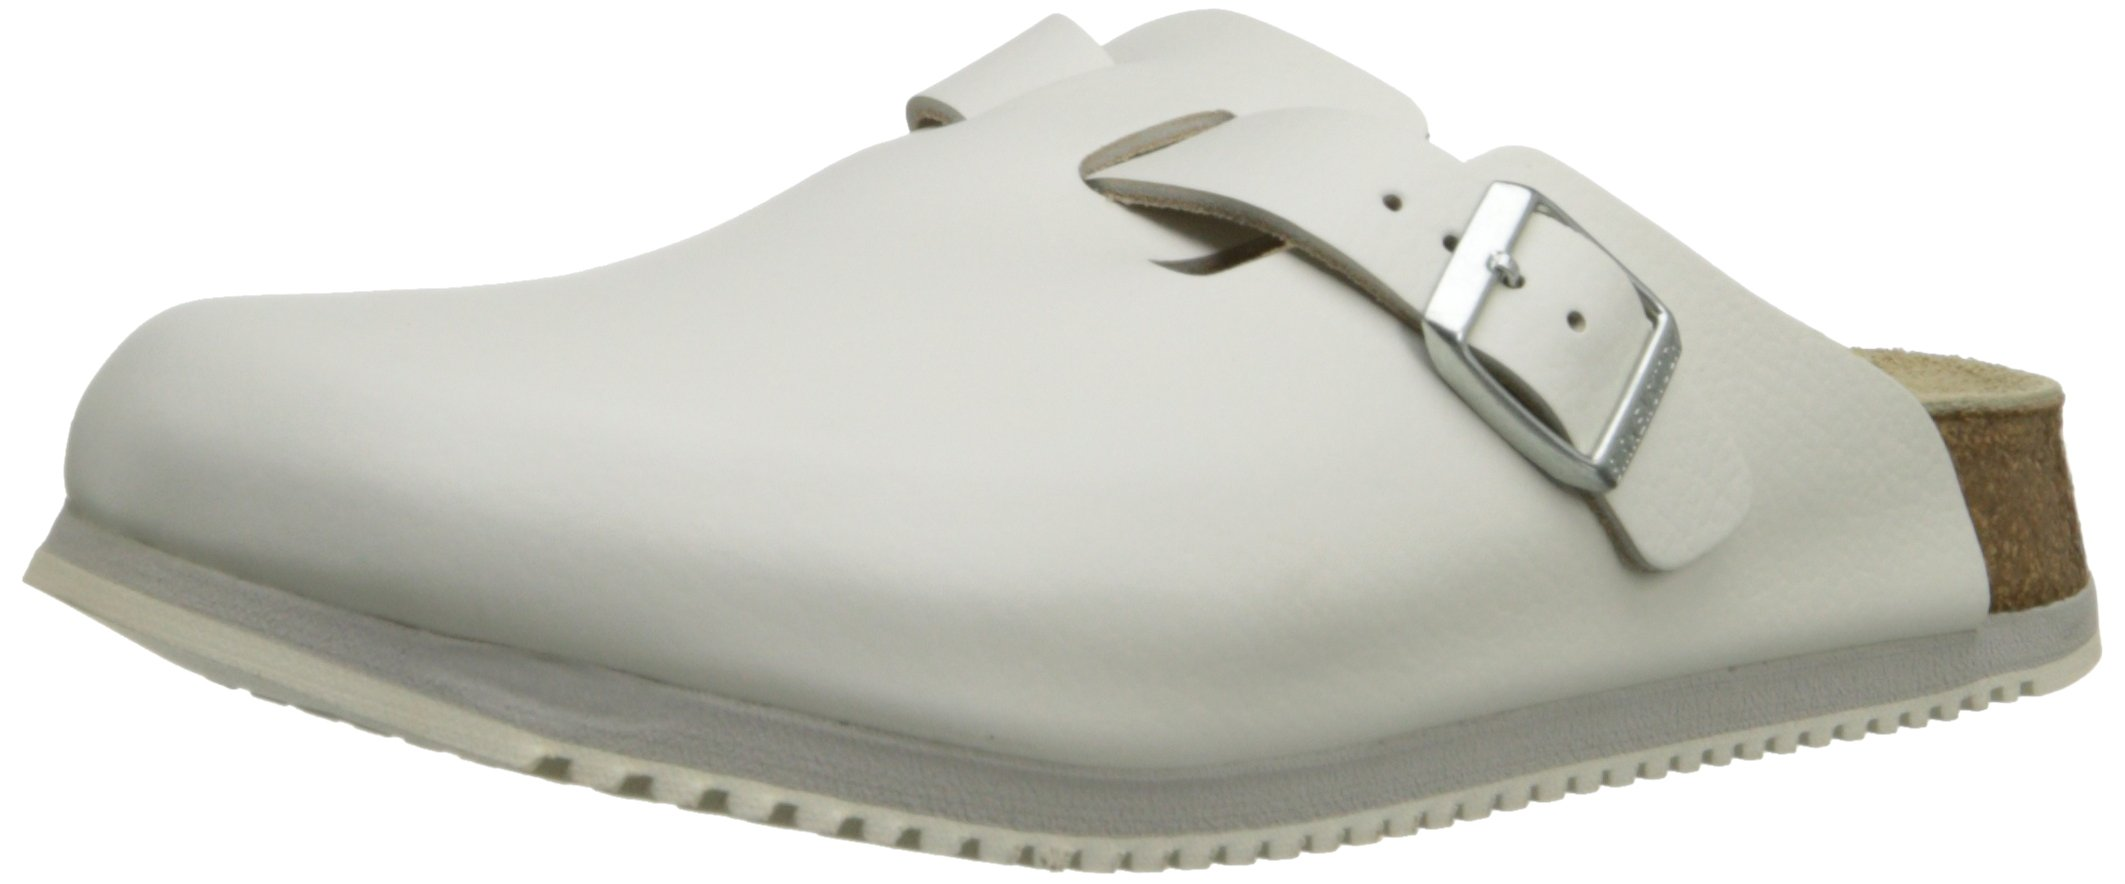 Birkenstock Unisex Professional Boston Super Grip Leather Slip Resistant Work Shoe,White,36 M EU